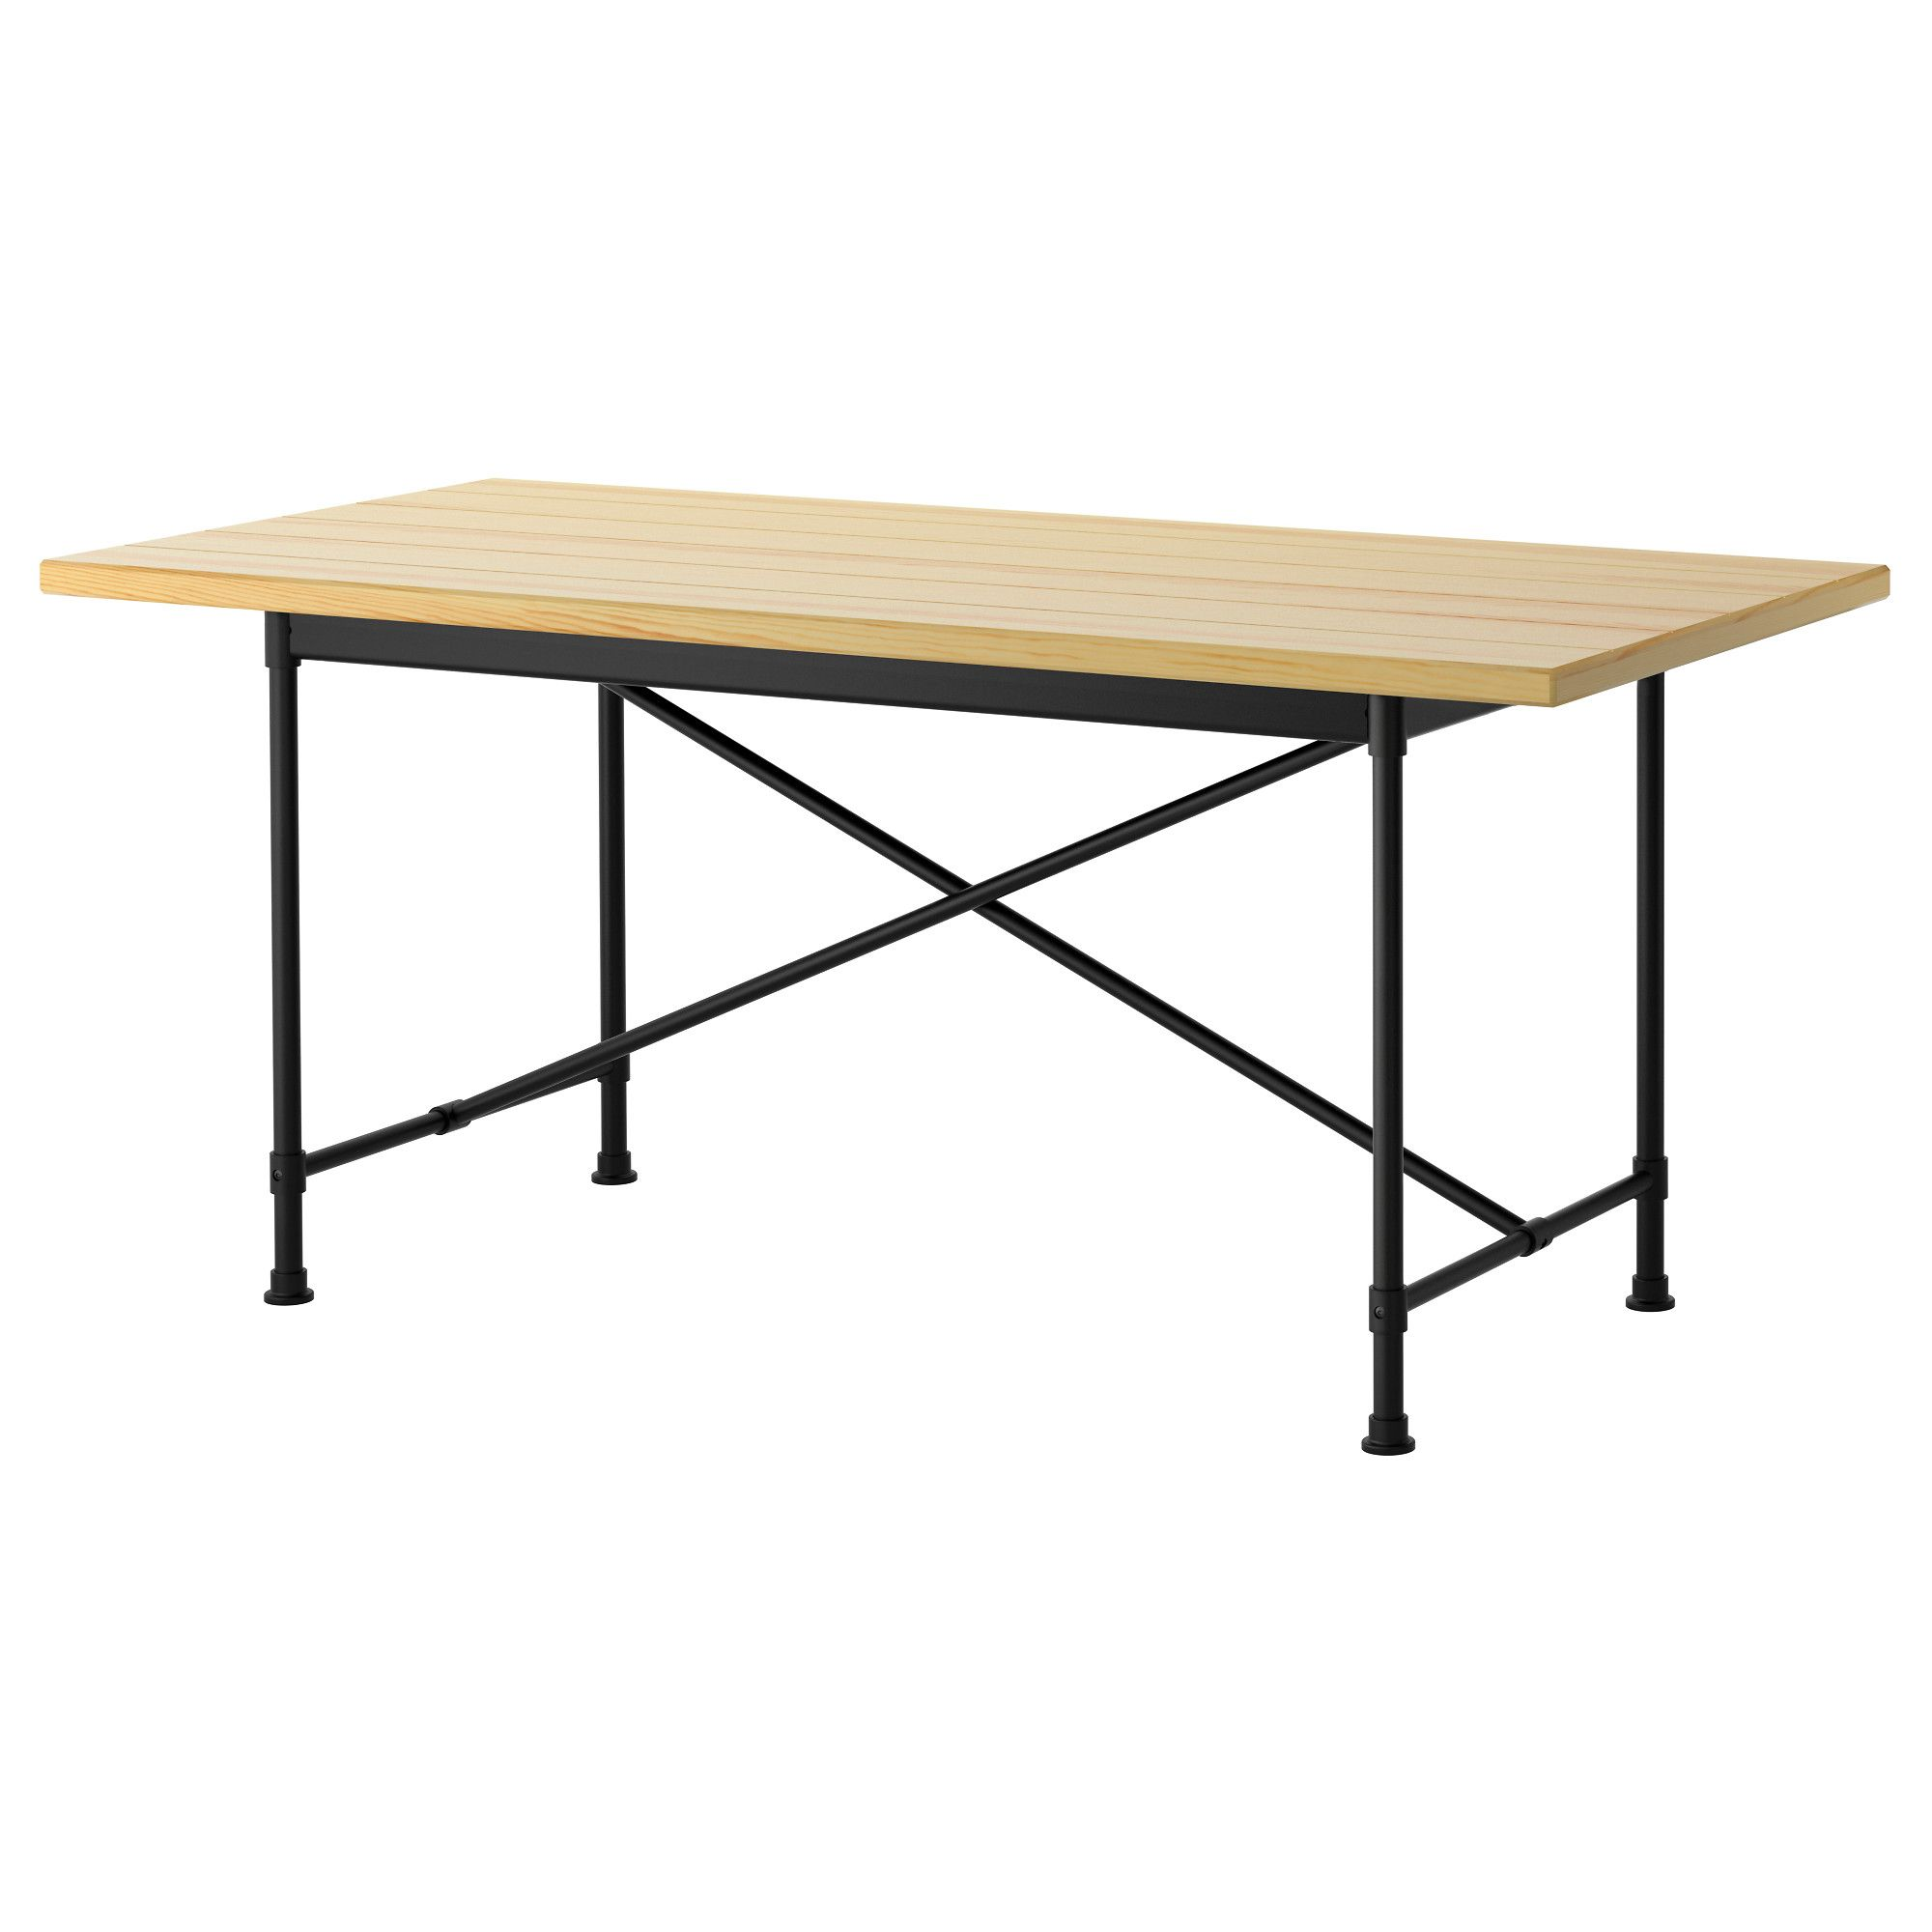 Ikea Table Sejour Karpalund Ryggestad Table Ikea Gt Gt Gt Tables